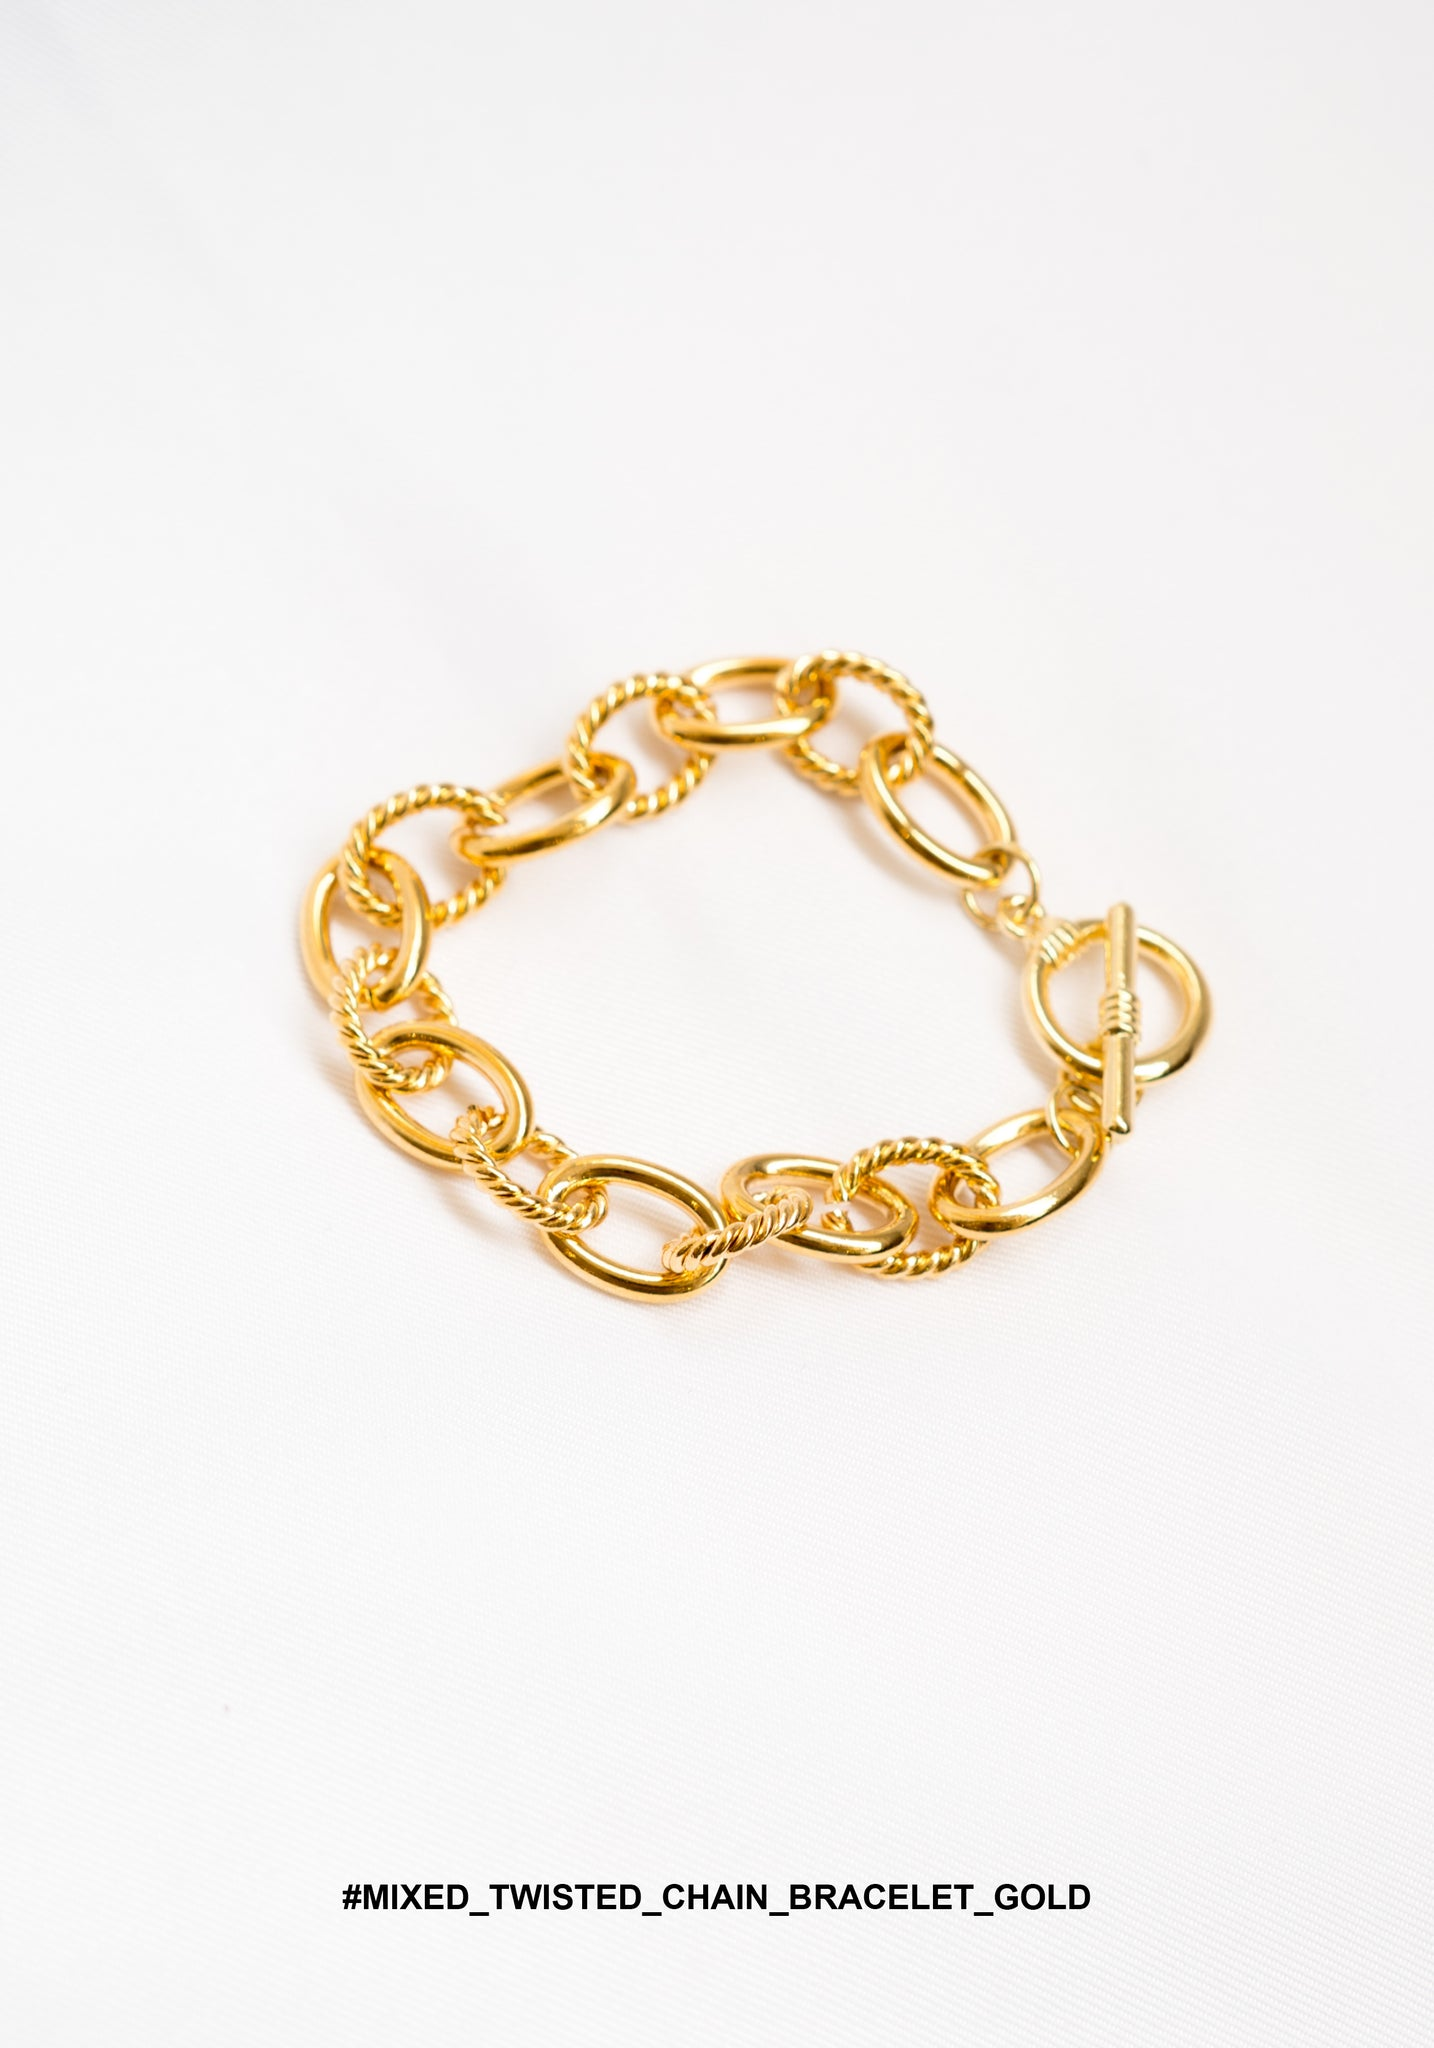 Mixed Twisted Chain Bracelet Gold - whoami